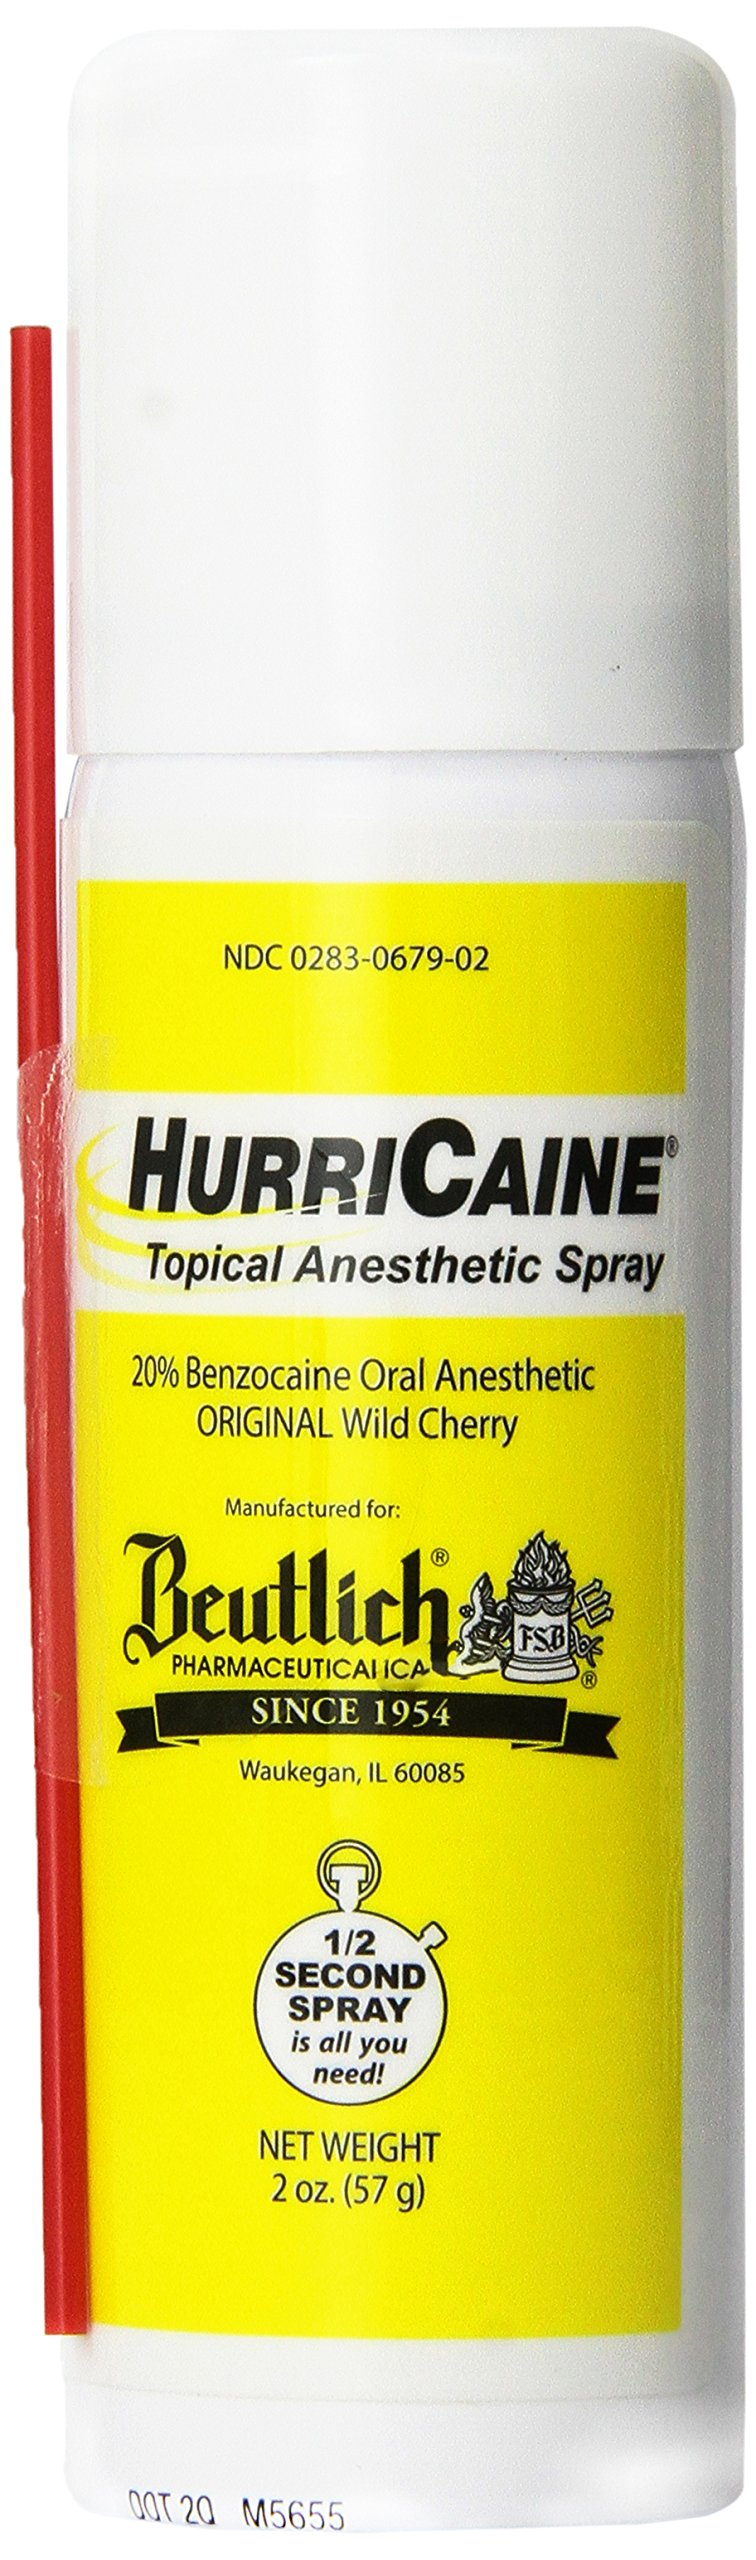 Beutlich LP Pharmaceuticals Hurricaine Topical Anesthetic 2 oz Wild Cherry